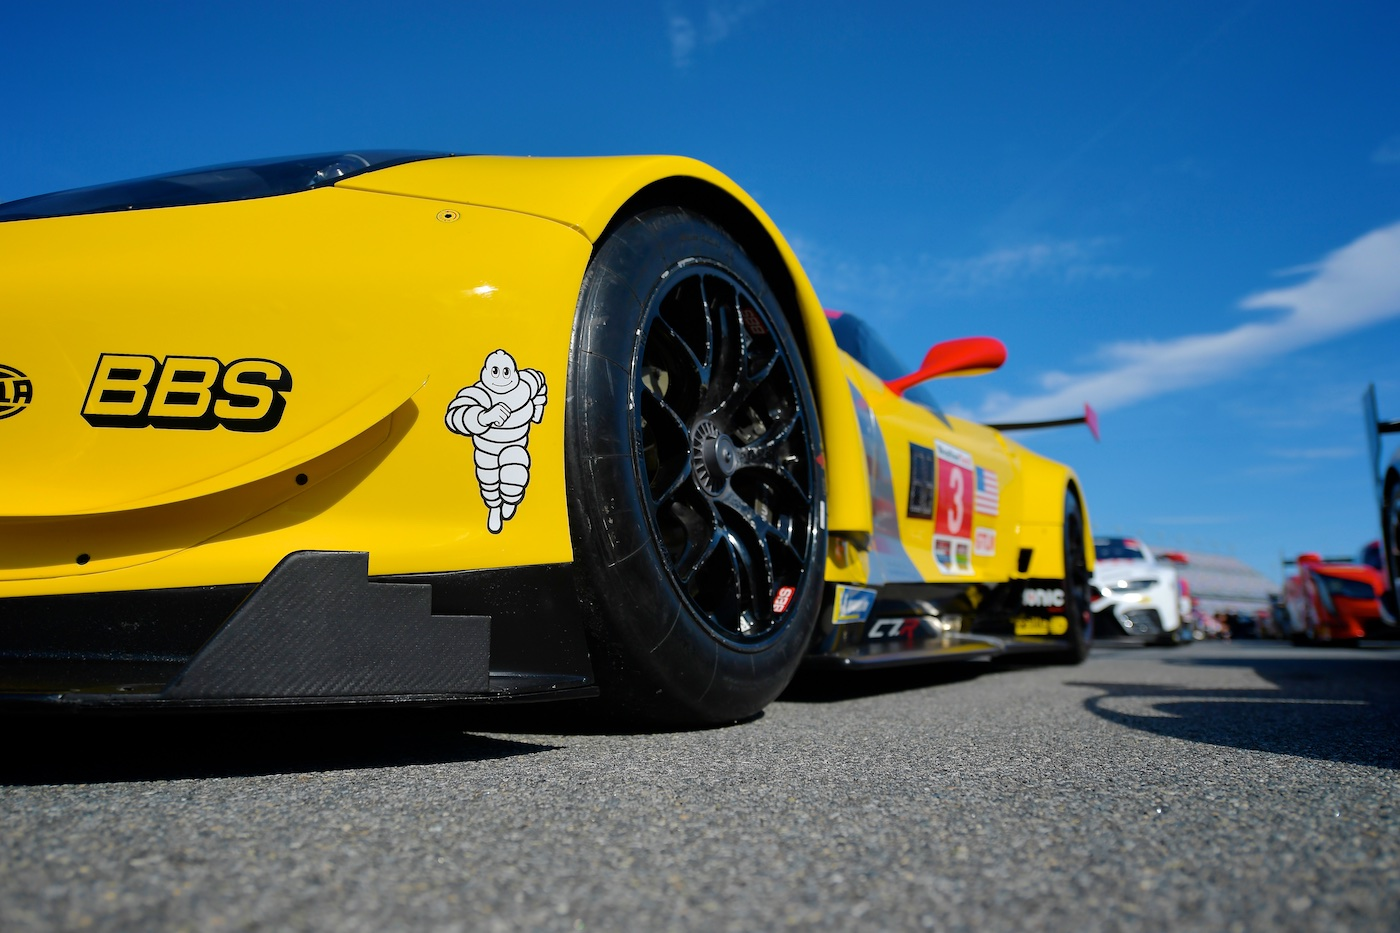 Corvette - Michelin Racing USA